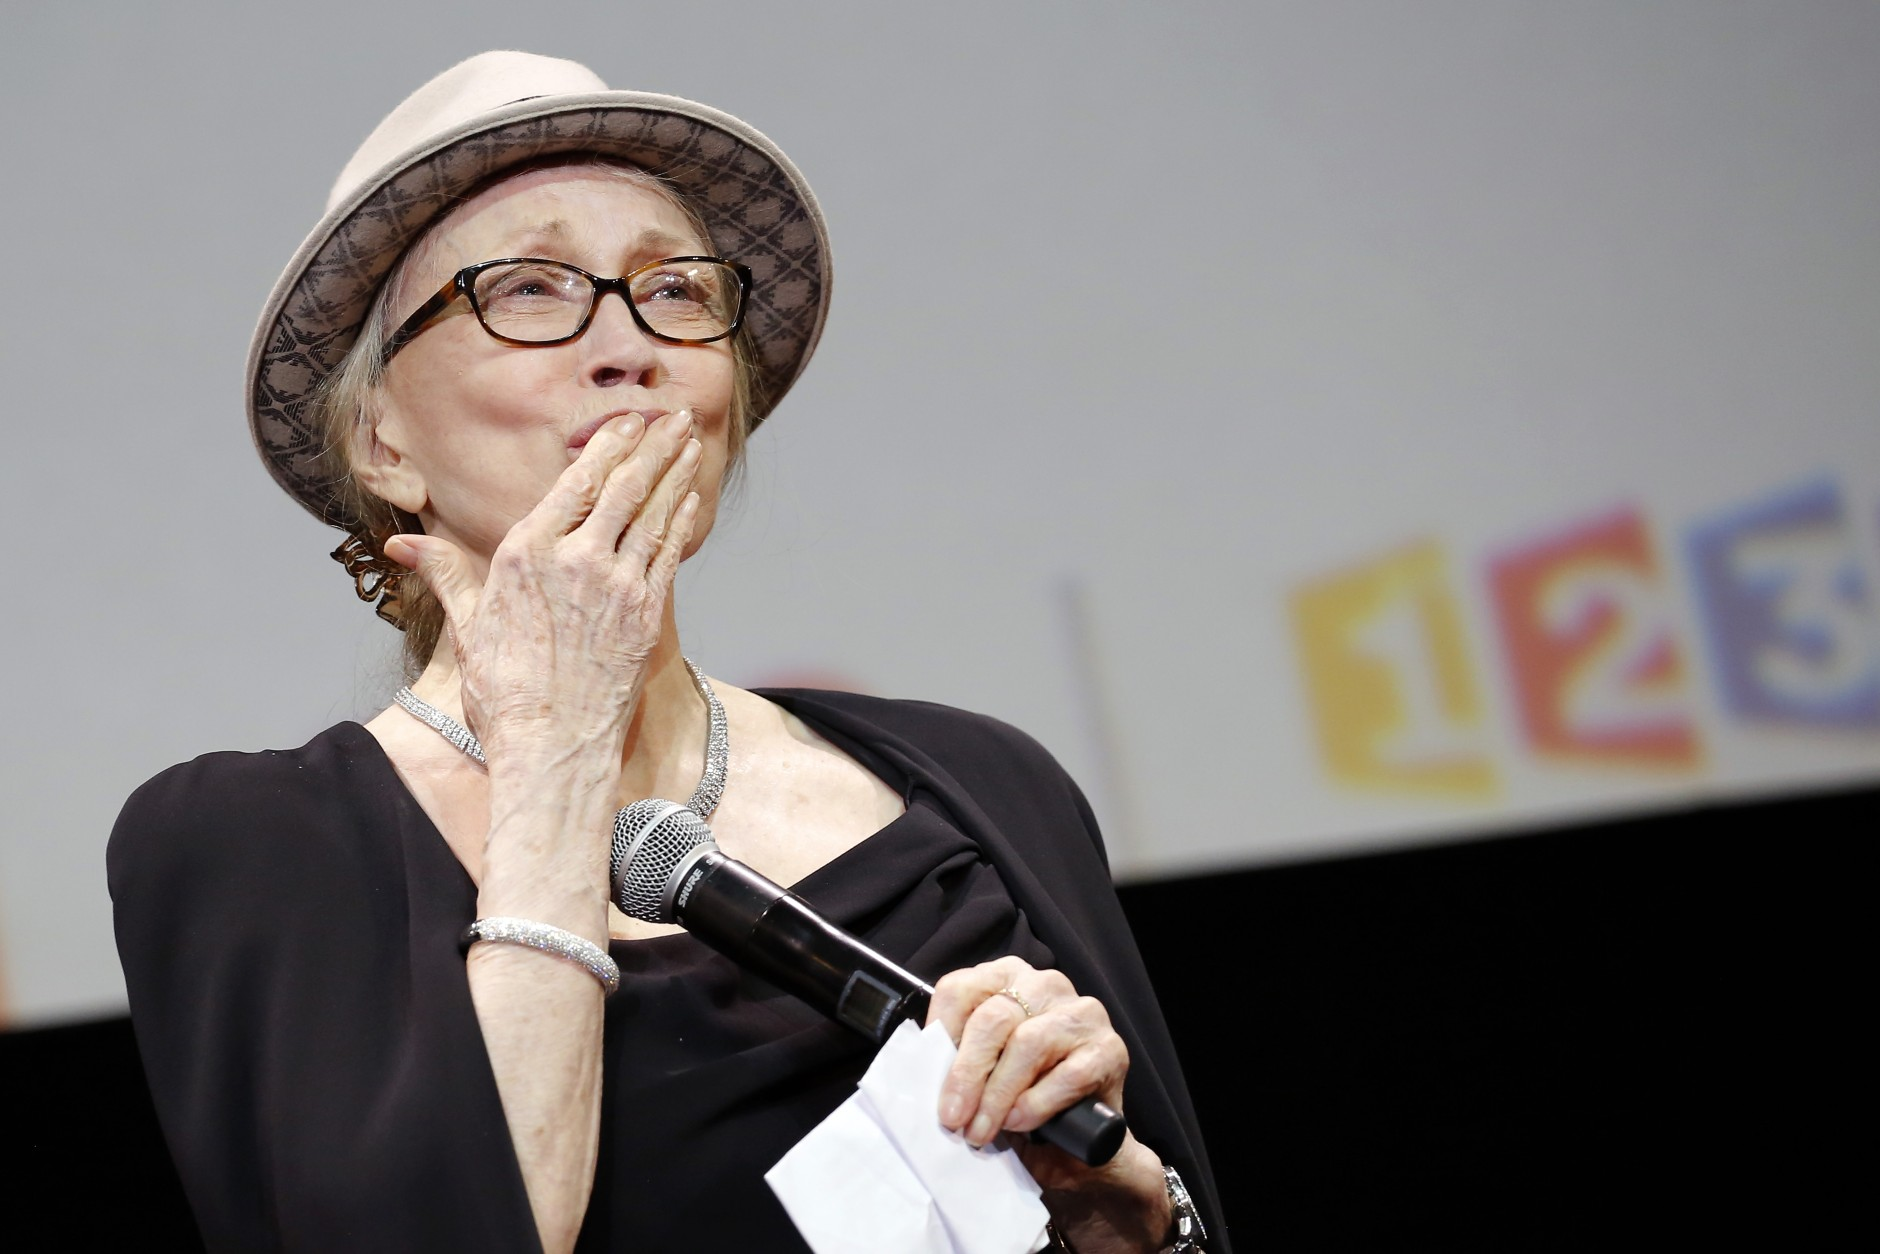 US actress Faye Dunaway blows a kiss to spectators during the opening ceremony of the 6th Lumiere Festival, in Lyon, central France, Monday, Oct. 13, 2014. (AP Photo/Laurent Cipriani)